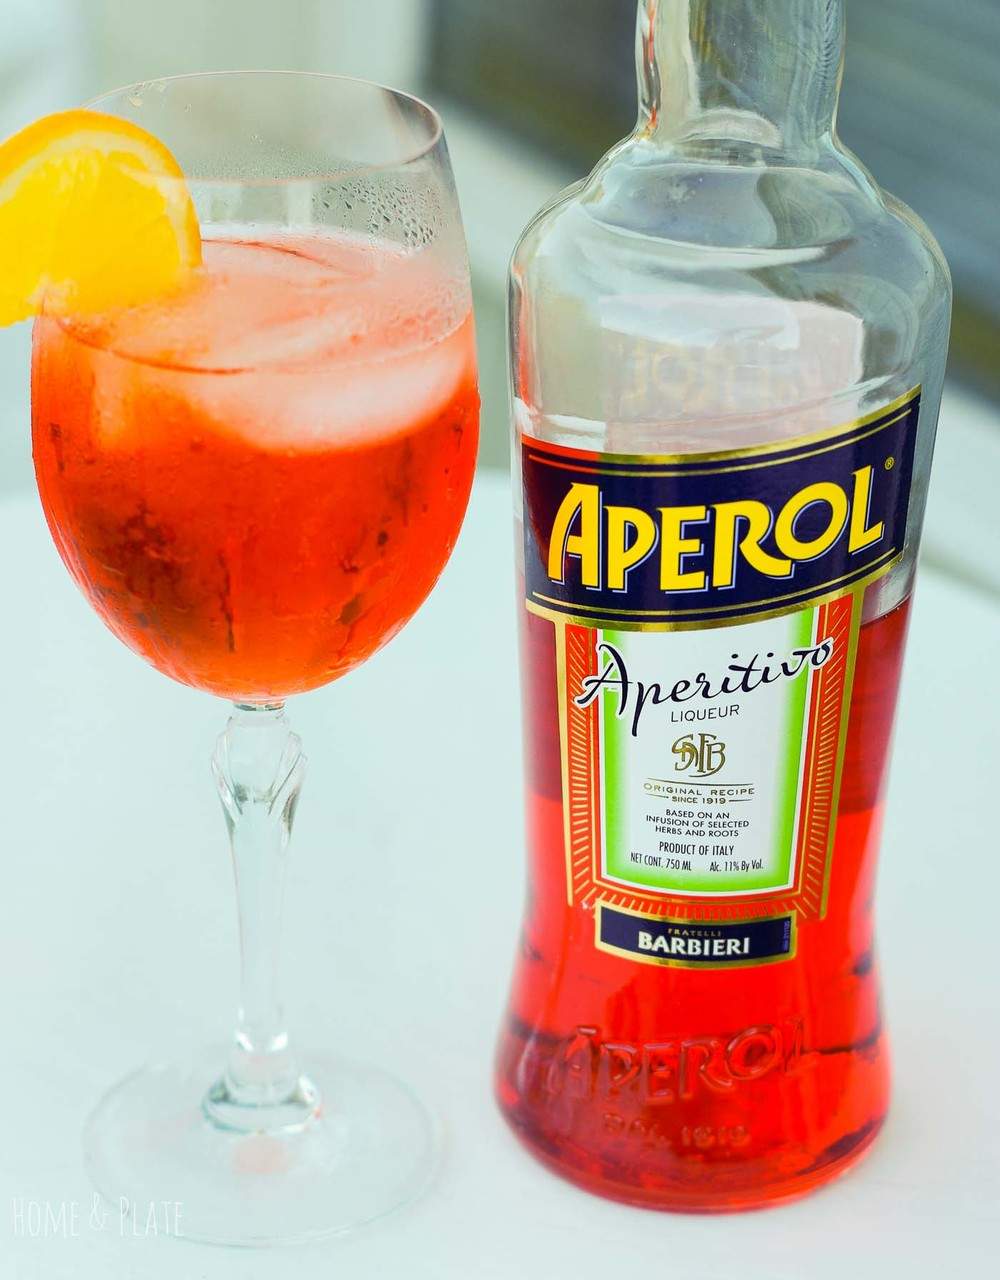 Italian Aperol Spritzers | www.homeandplate.com | Imagine a bubbly concoction of sparkling Prosecco white wine paired with soda water with the underlying flavor of oranges, herbs and spices.